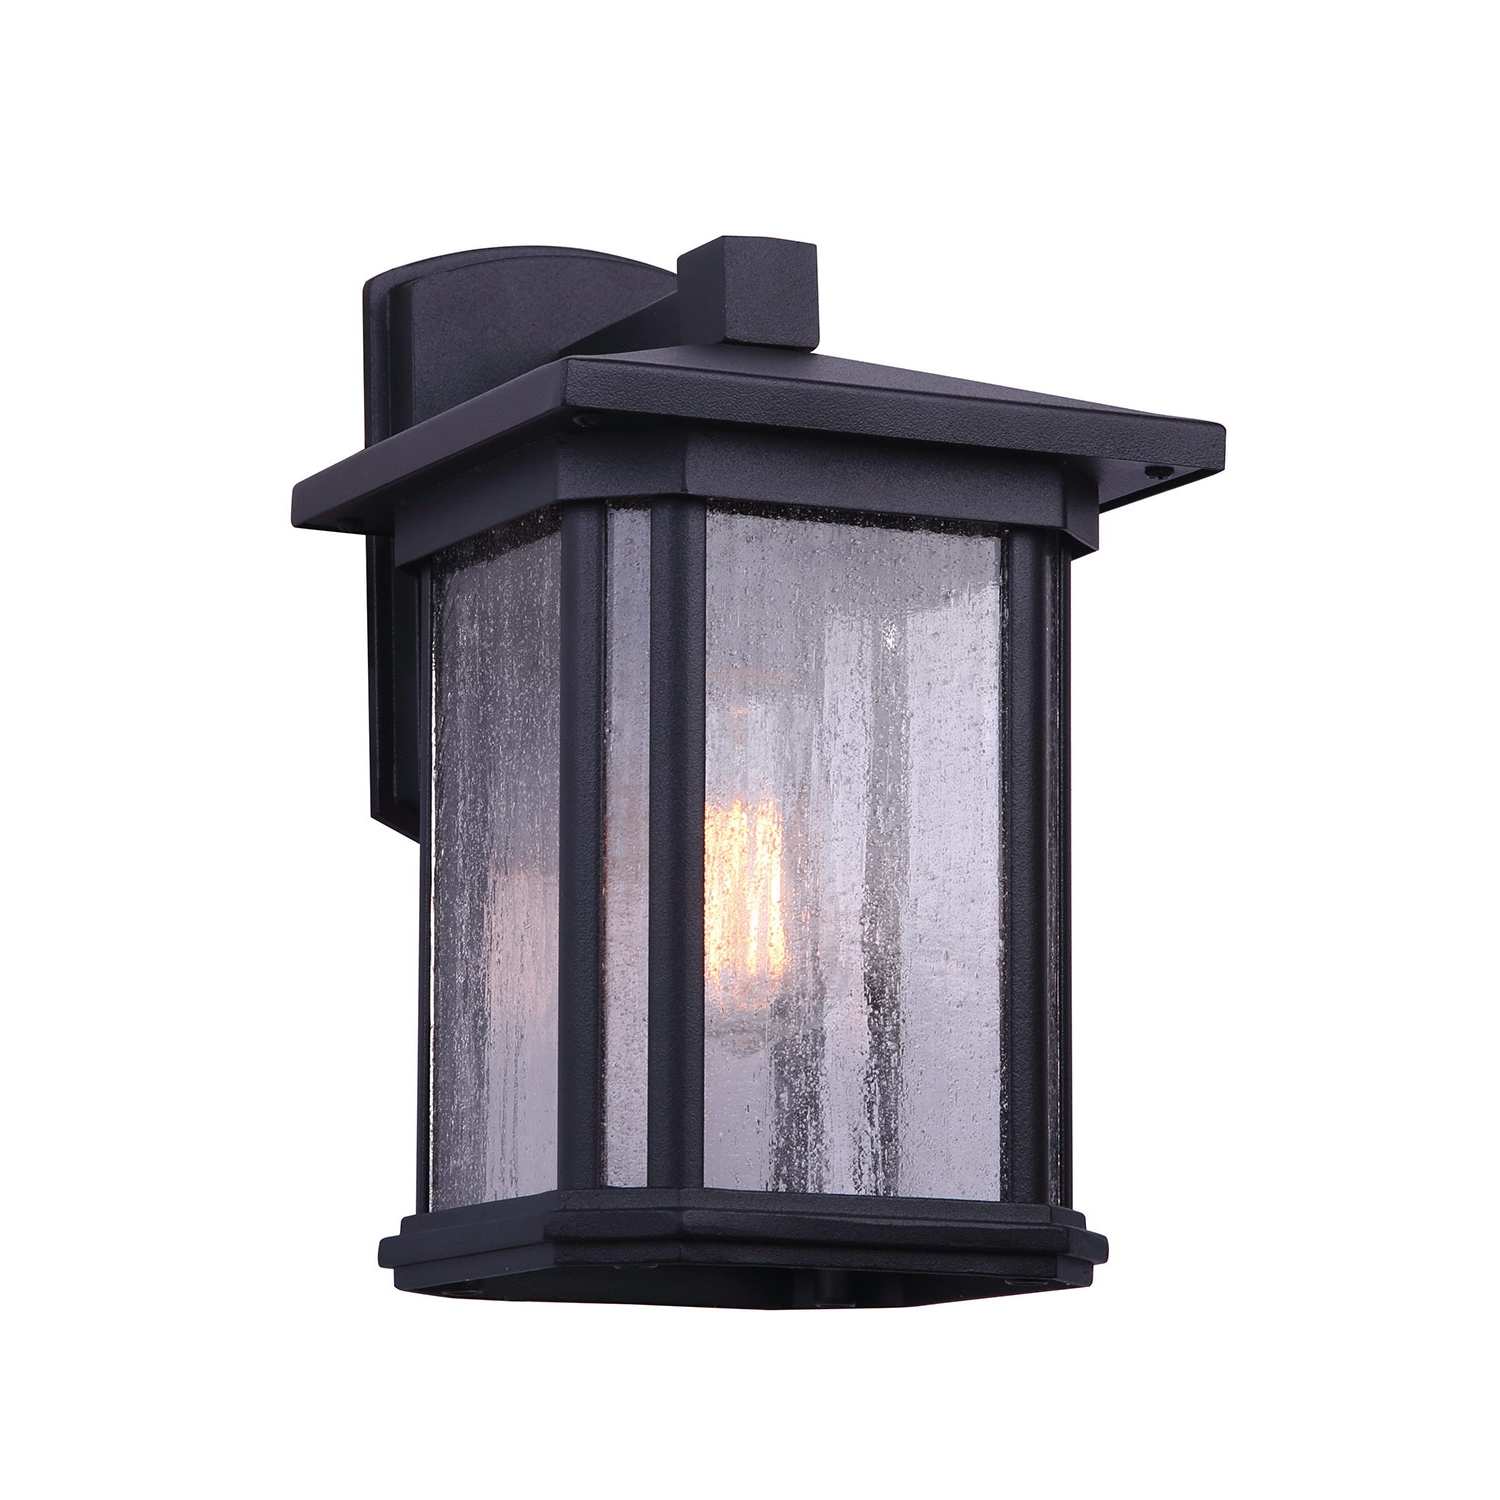 Bennington Clio 1 Bulb Black Outdoor Light Wall Lantern With Most Popular Emaje Black Seeded Glass Outdoor Wall Lanterns (View 2 of 20)